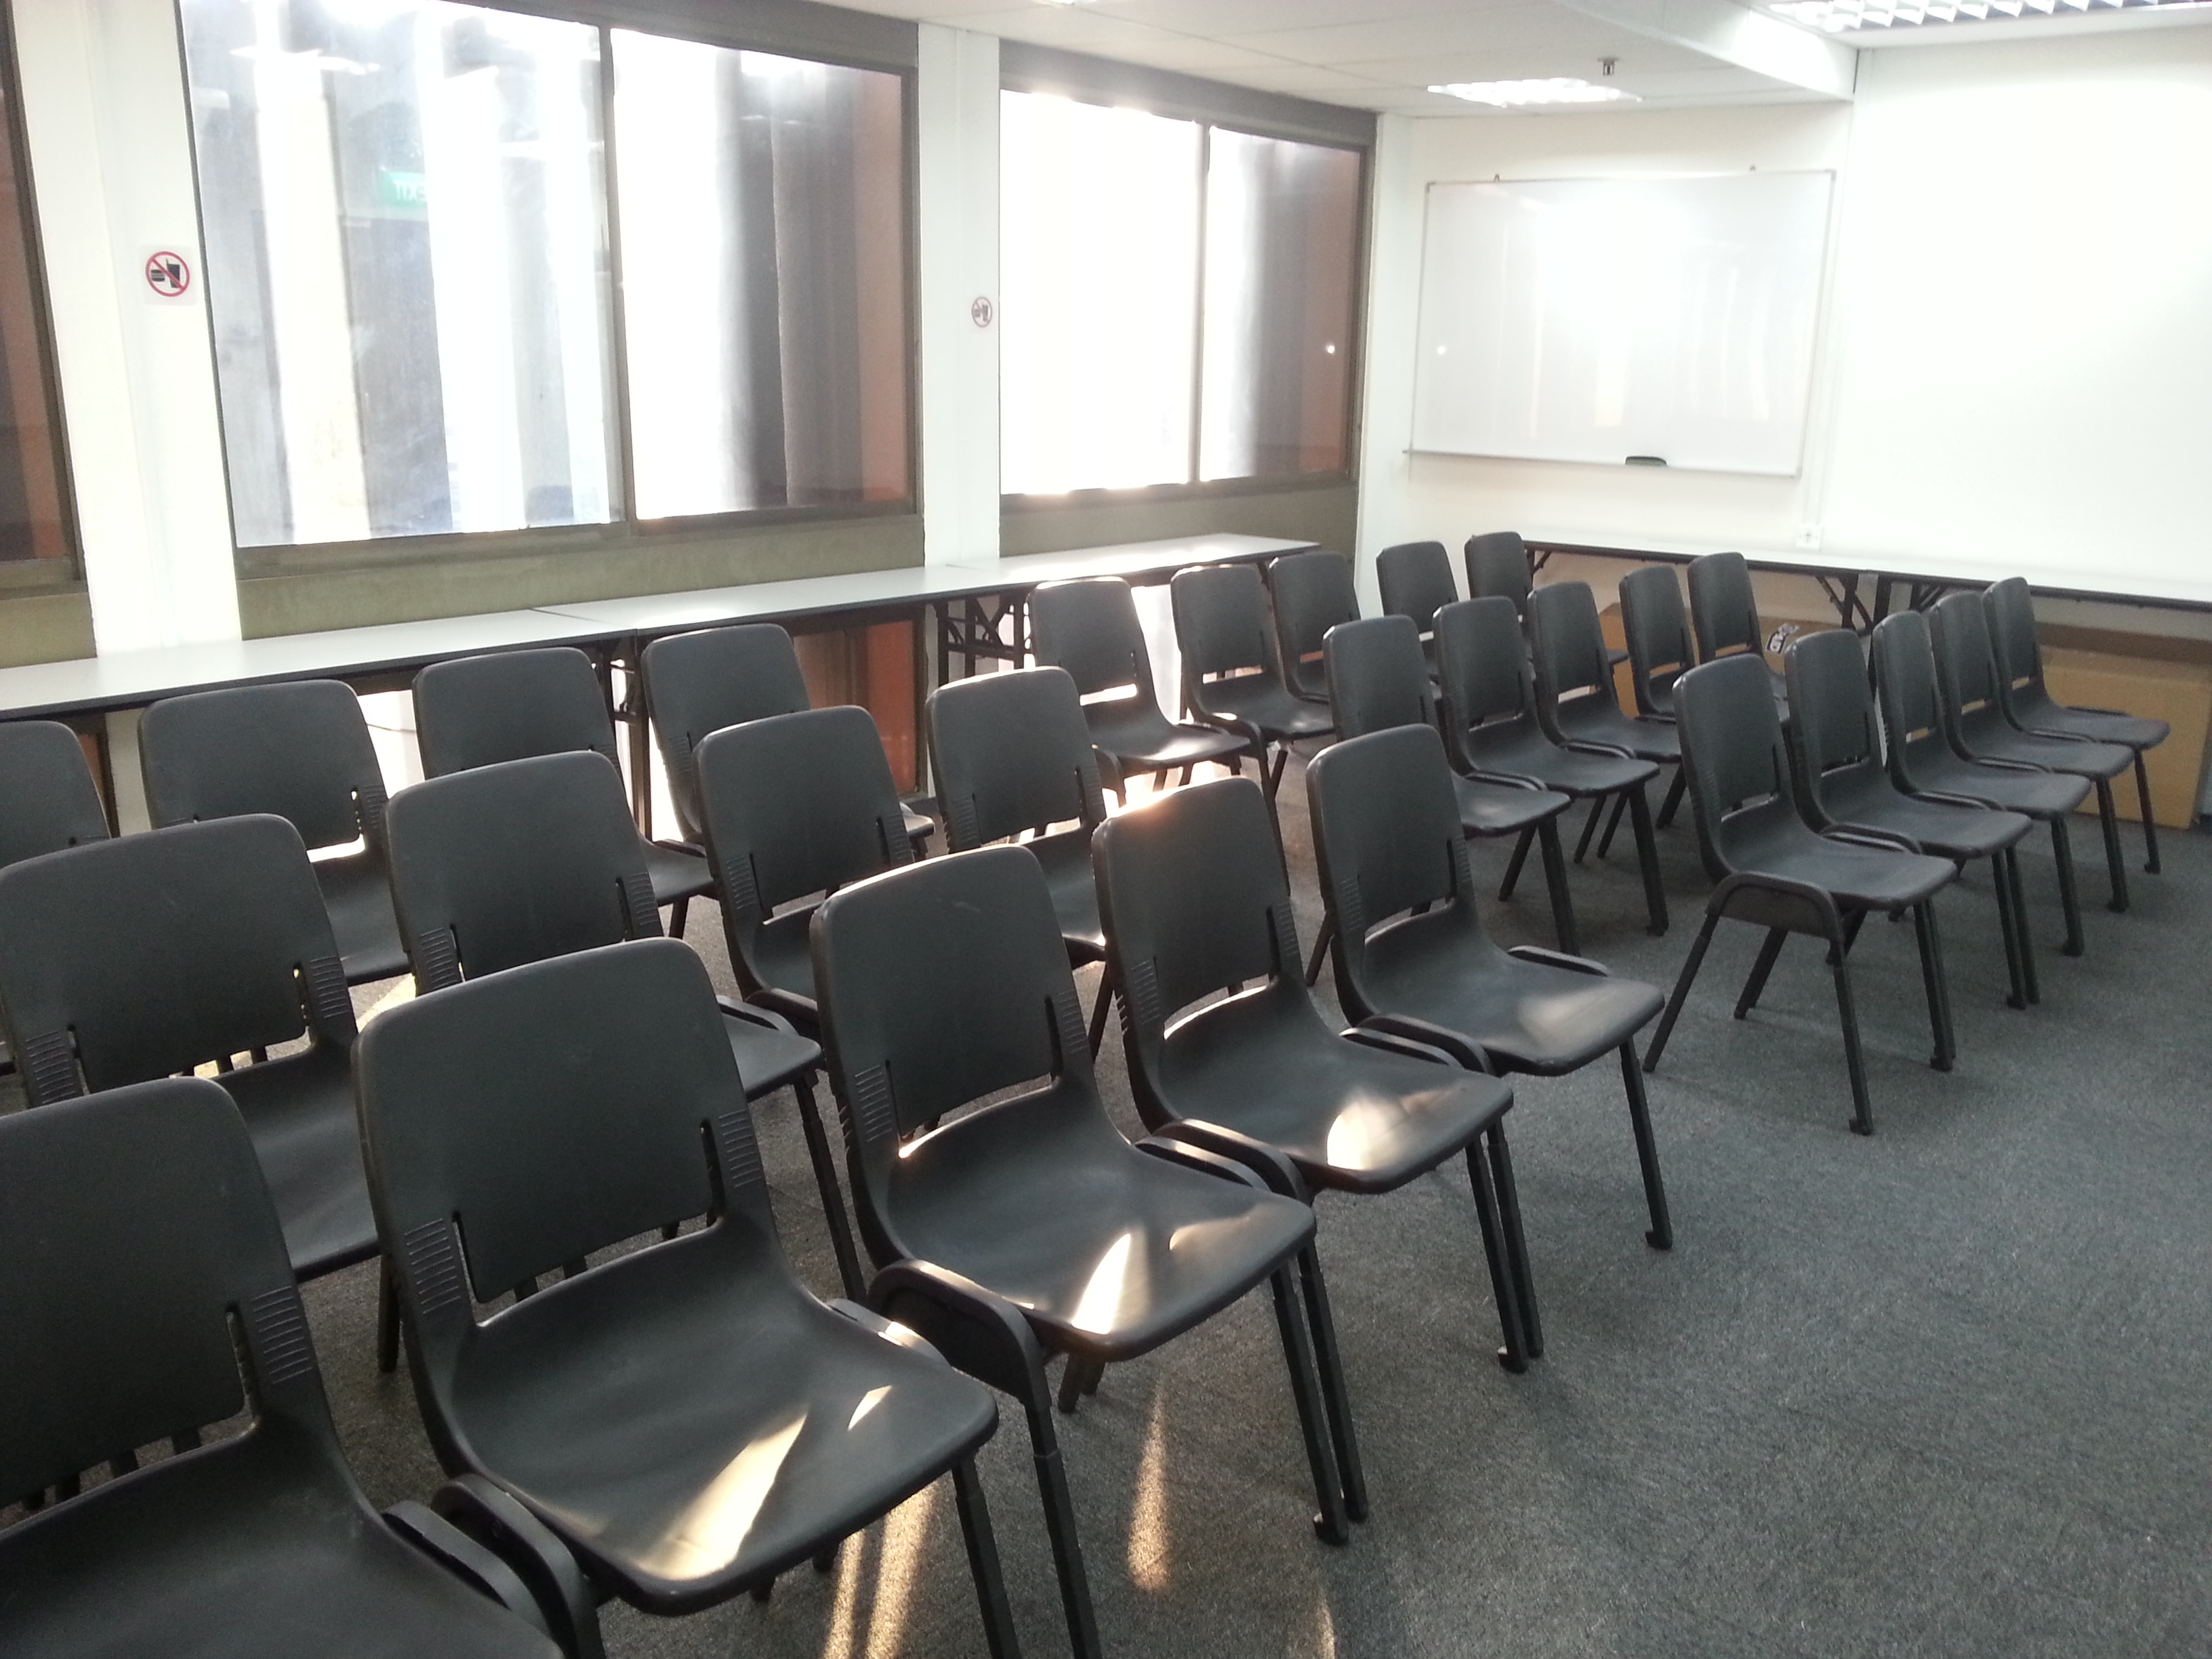 Seminar Room Rental Singapore Seating Arrangement 6